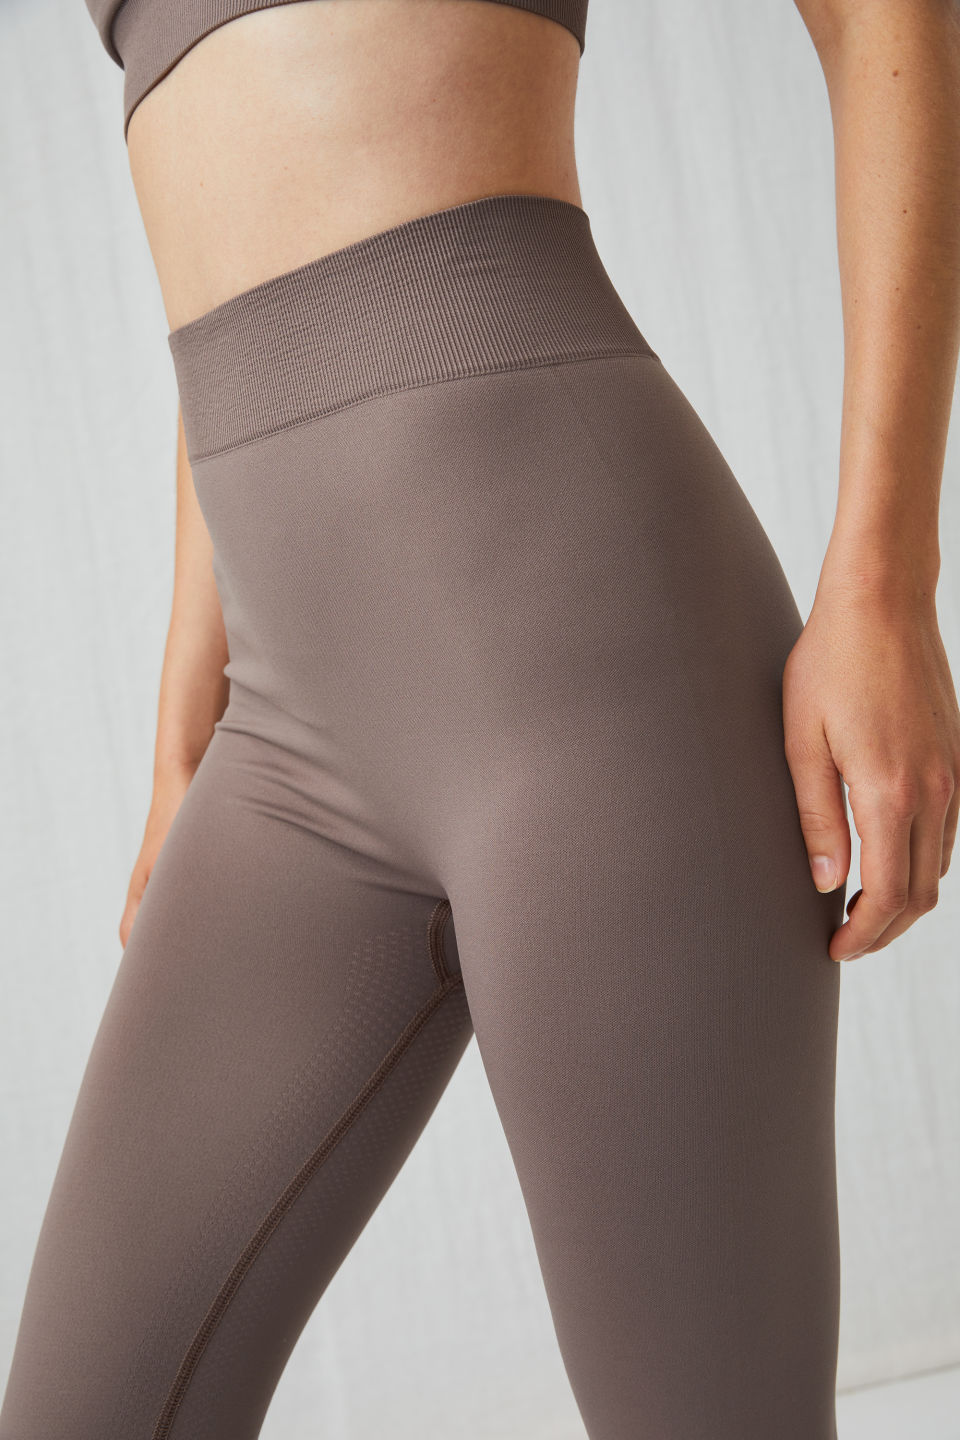 Detailed image of Arket seamless yoga tights in beige